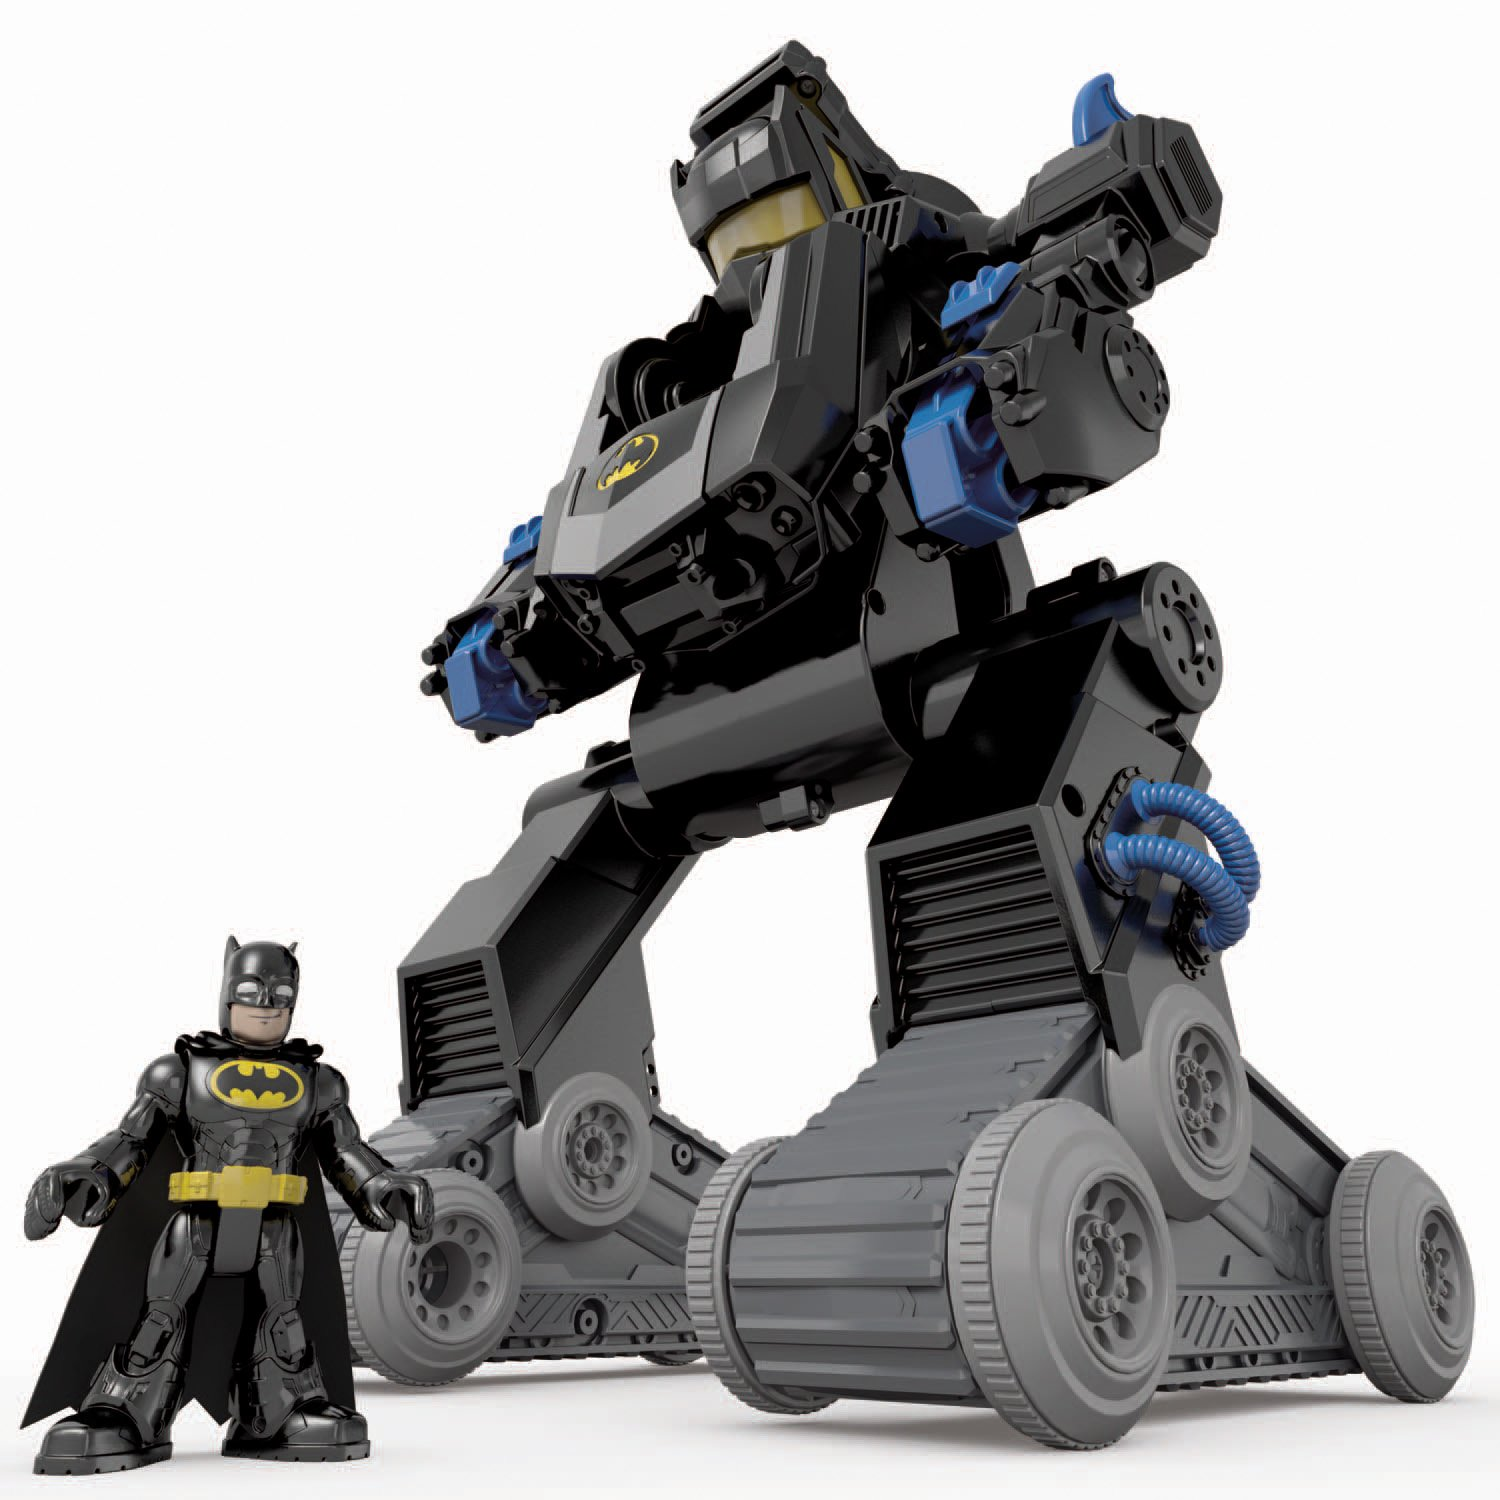 Amazon Fisher Price Imaginext Batbot Toys & Games